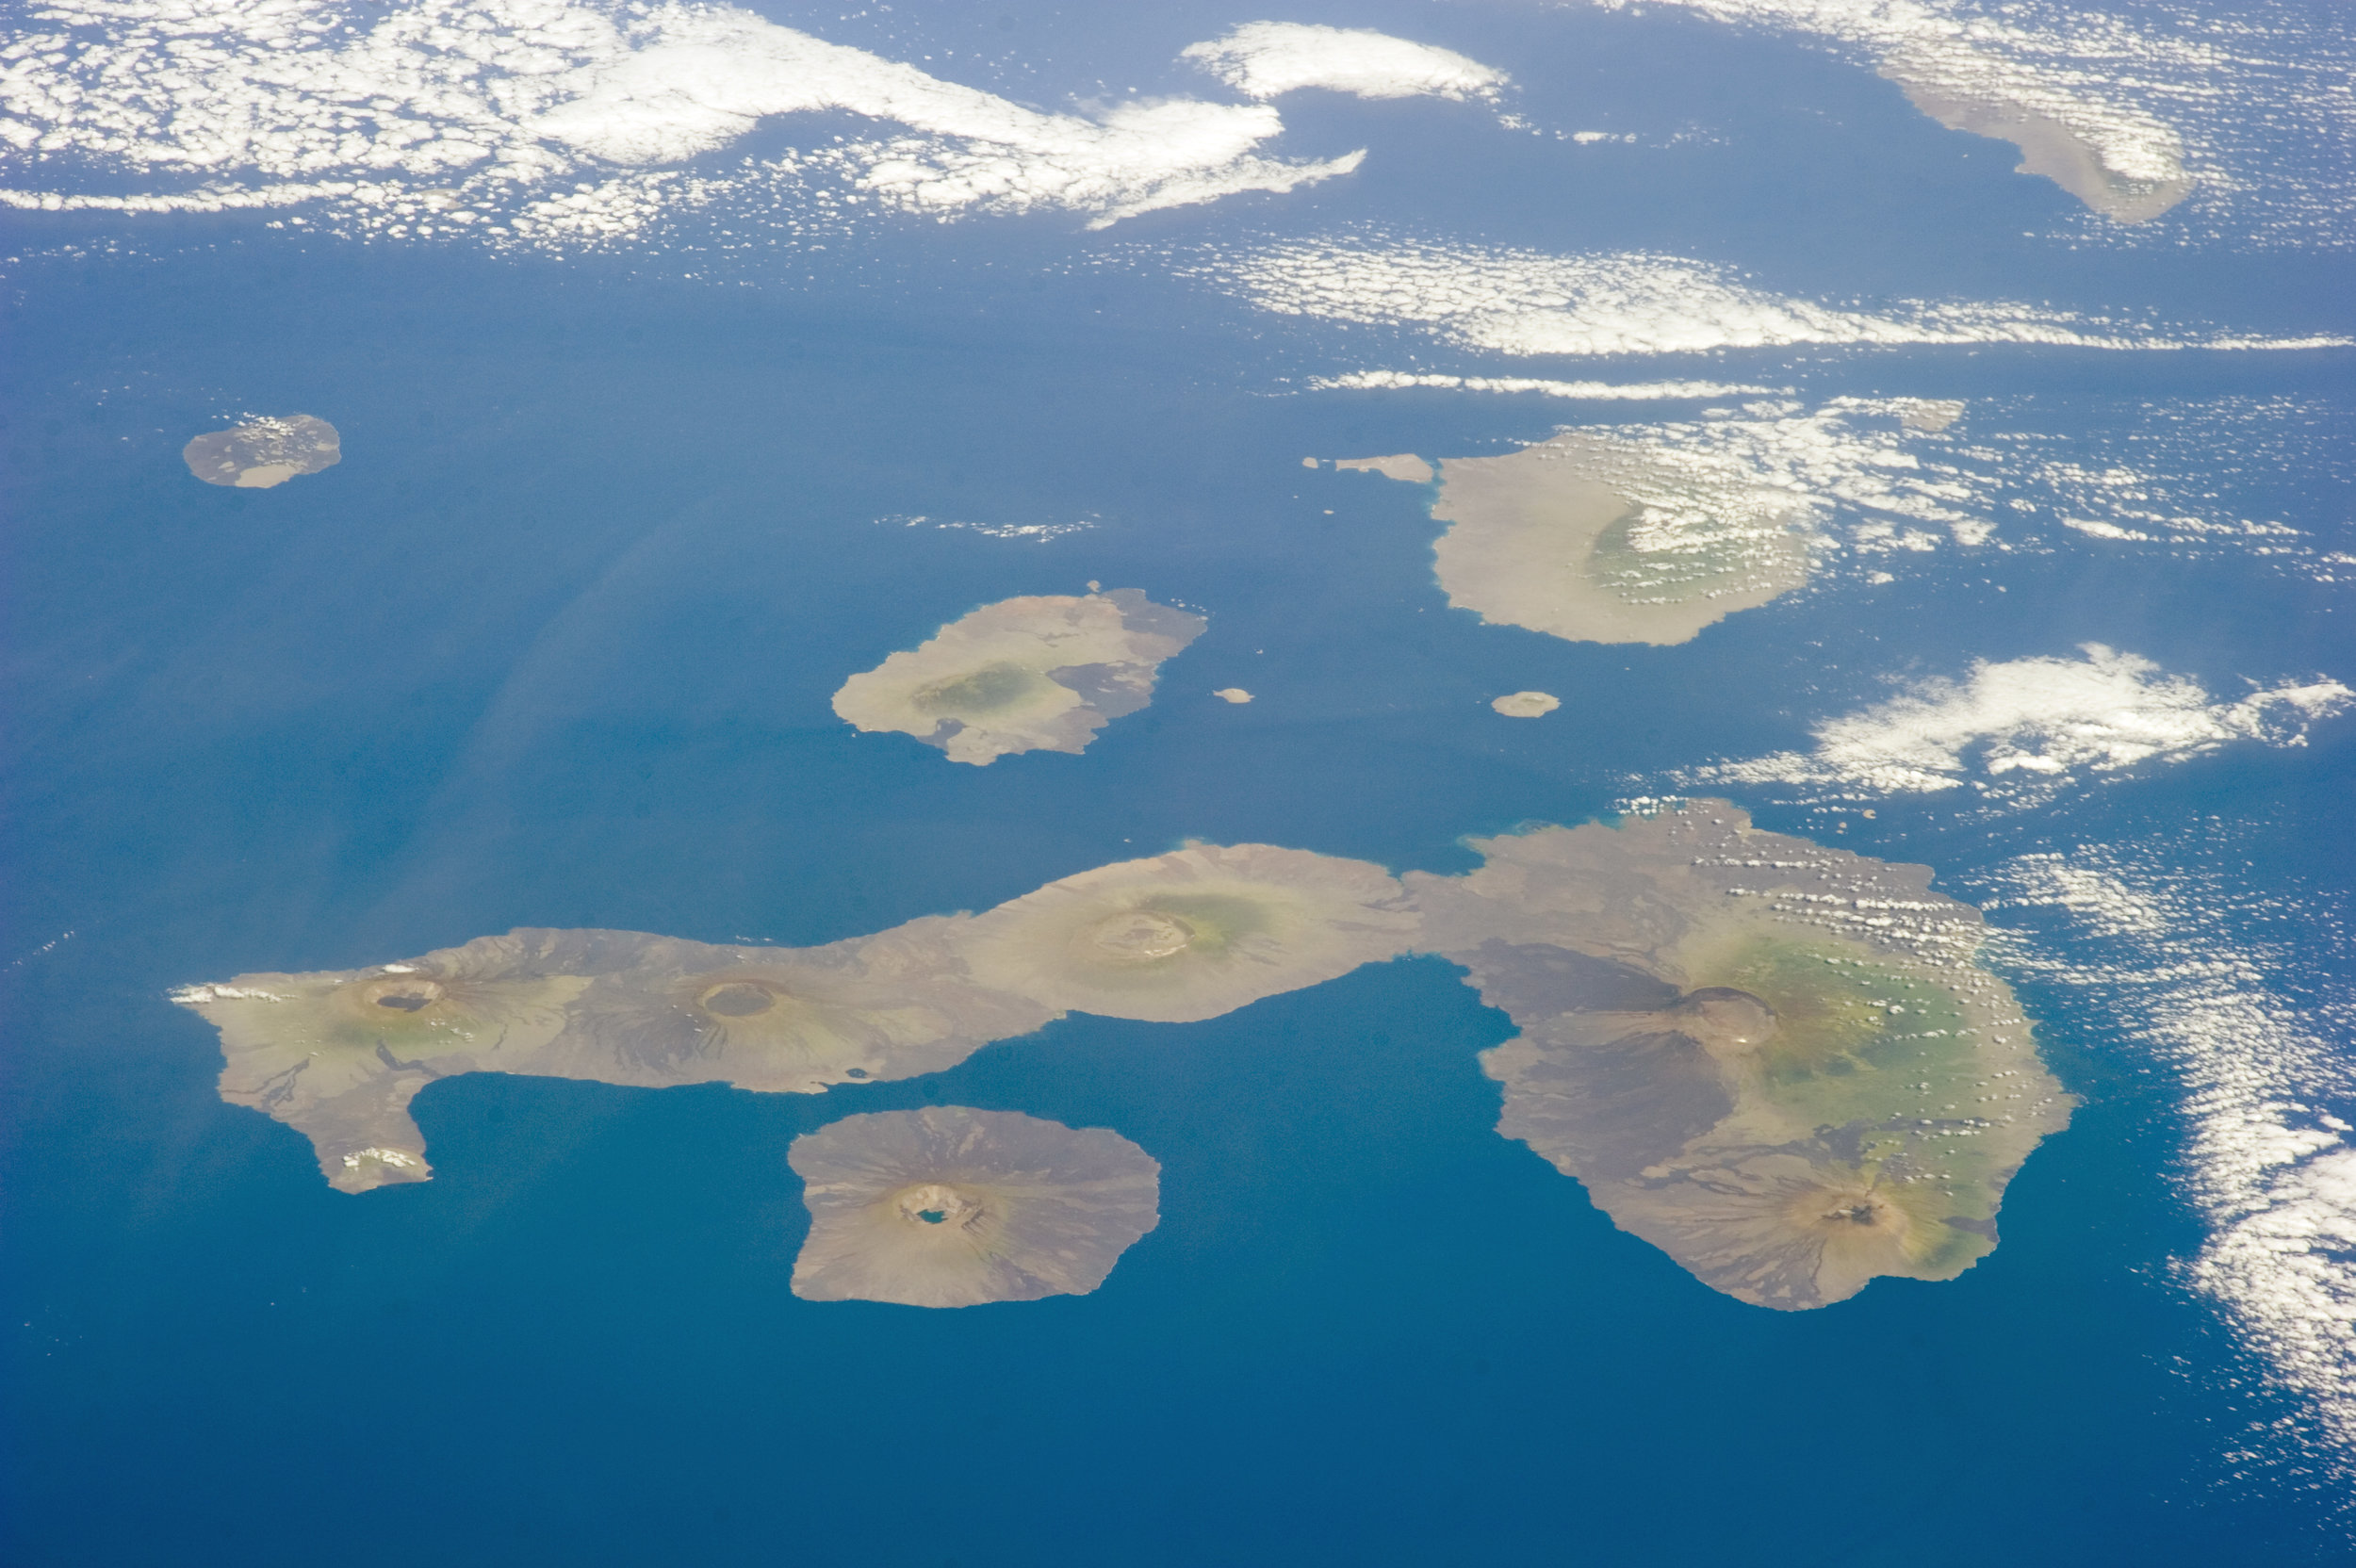 Galapagos Islands from the sky